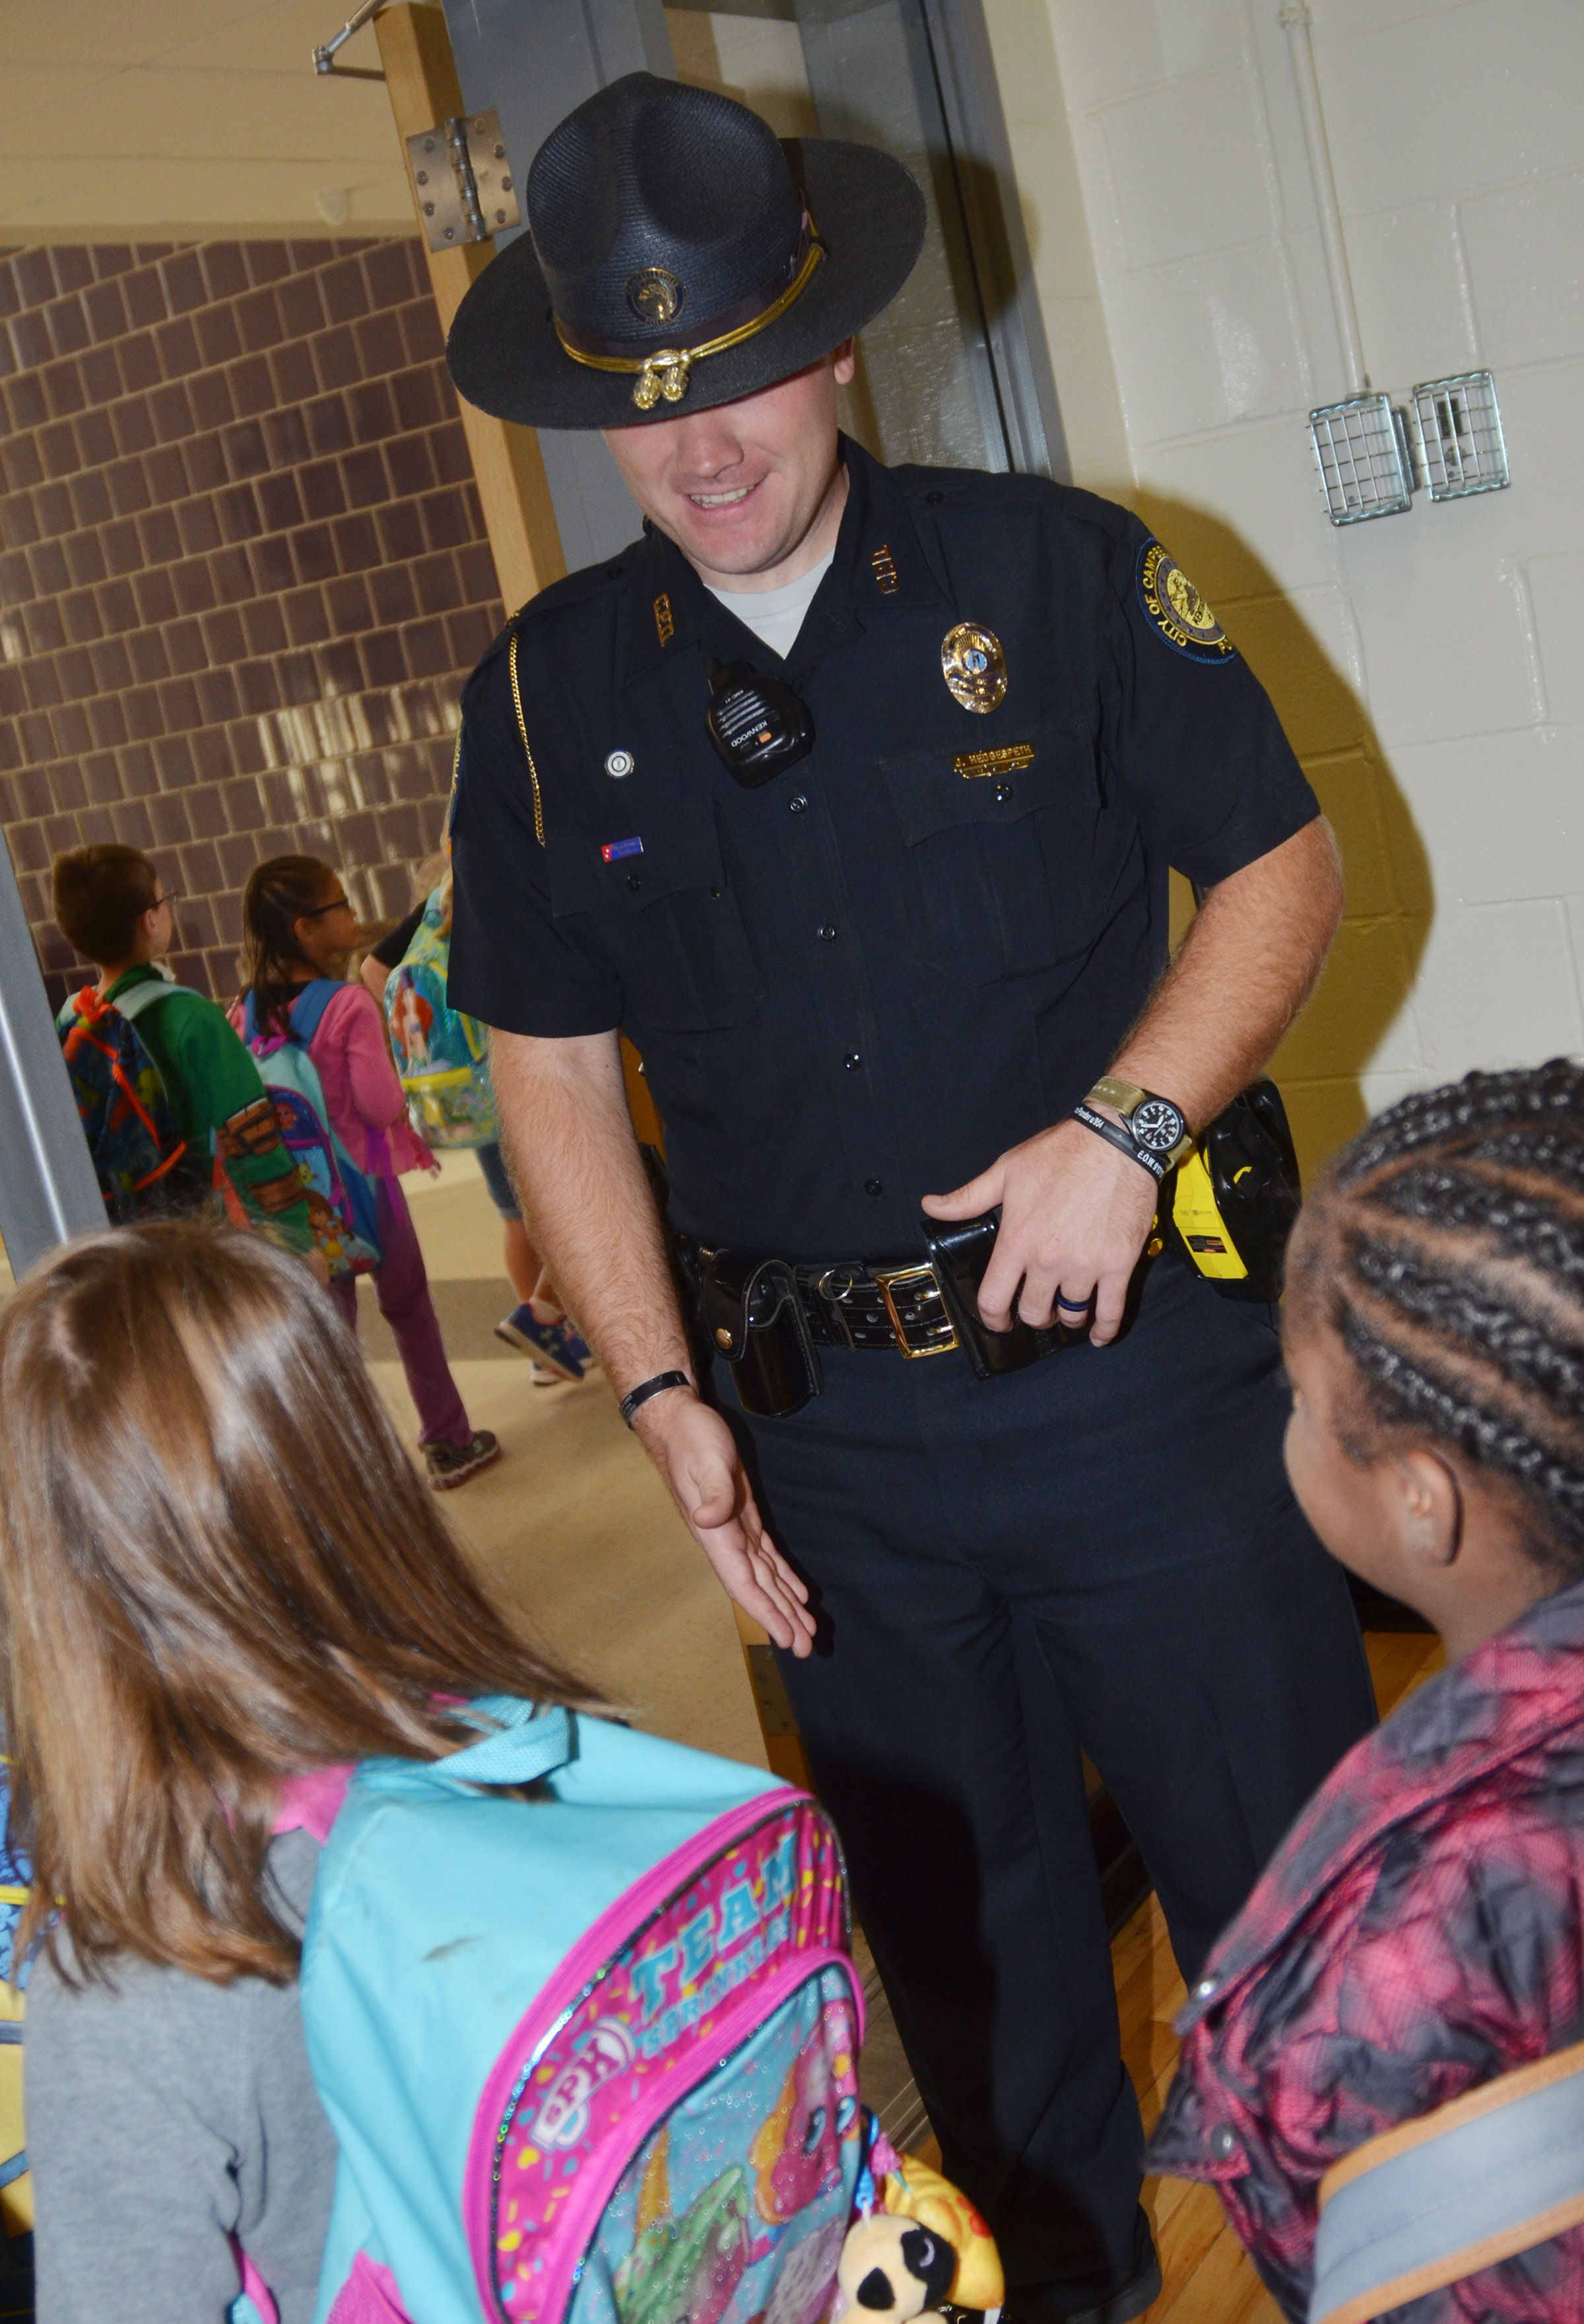 Campbellsville Police Officer Jake Hedgespeth greets CES students as they walk to their classrooms.